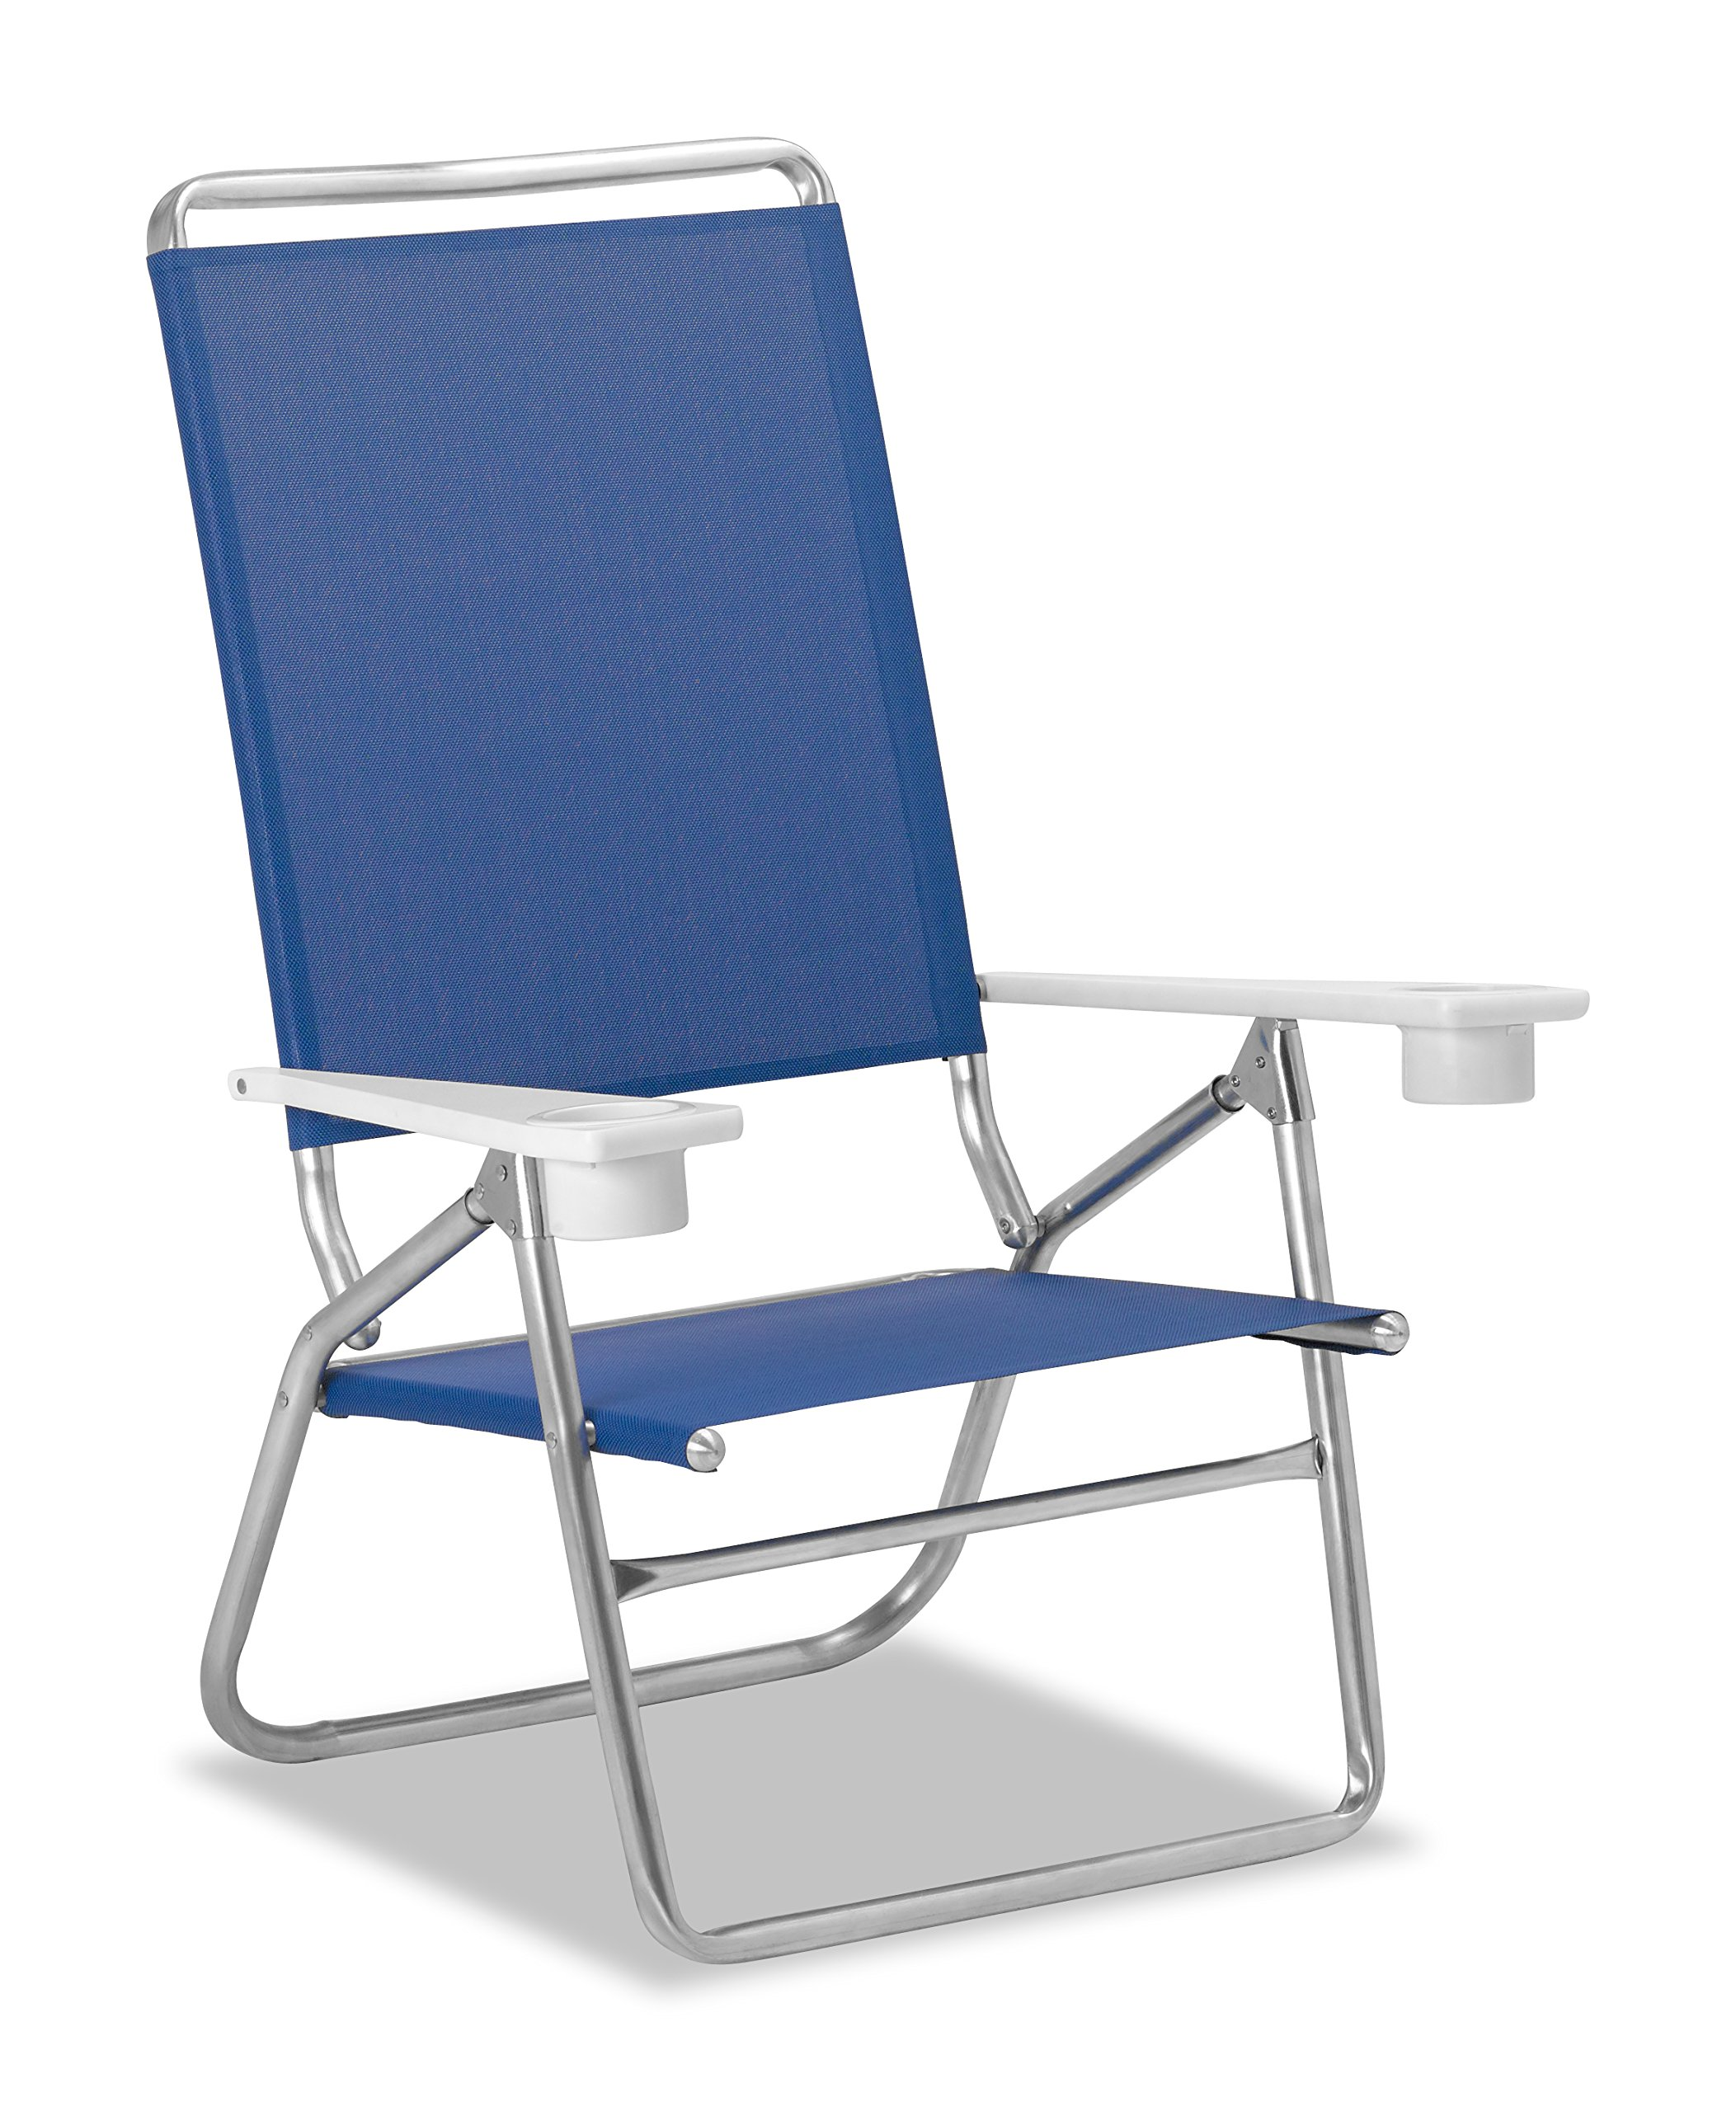 Telescope Casual M51135D01 Light 'n Easy High Boy Mini-Sun Chaise, Cobalt/Blue by Telescope Casual